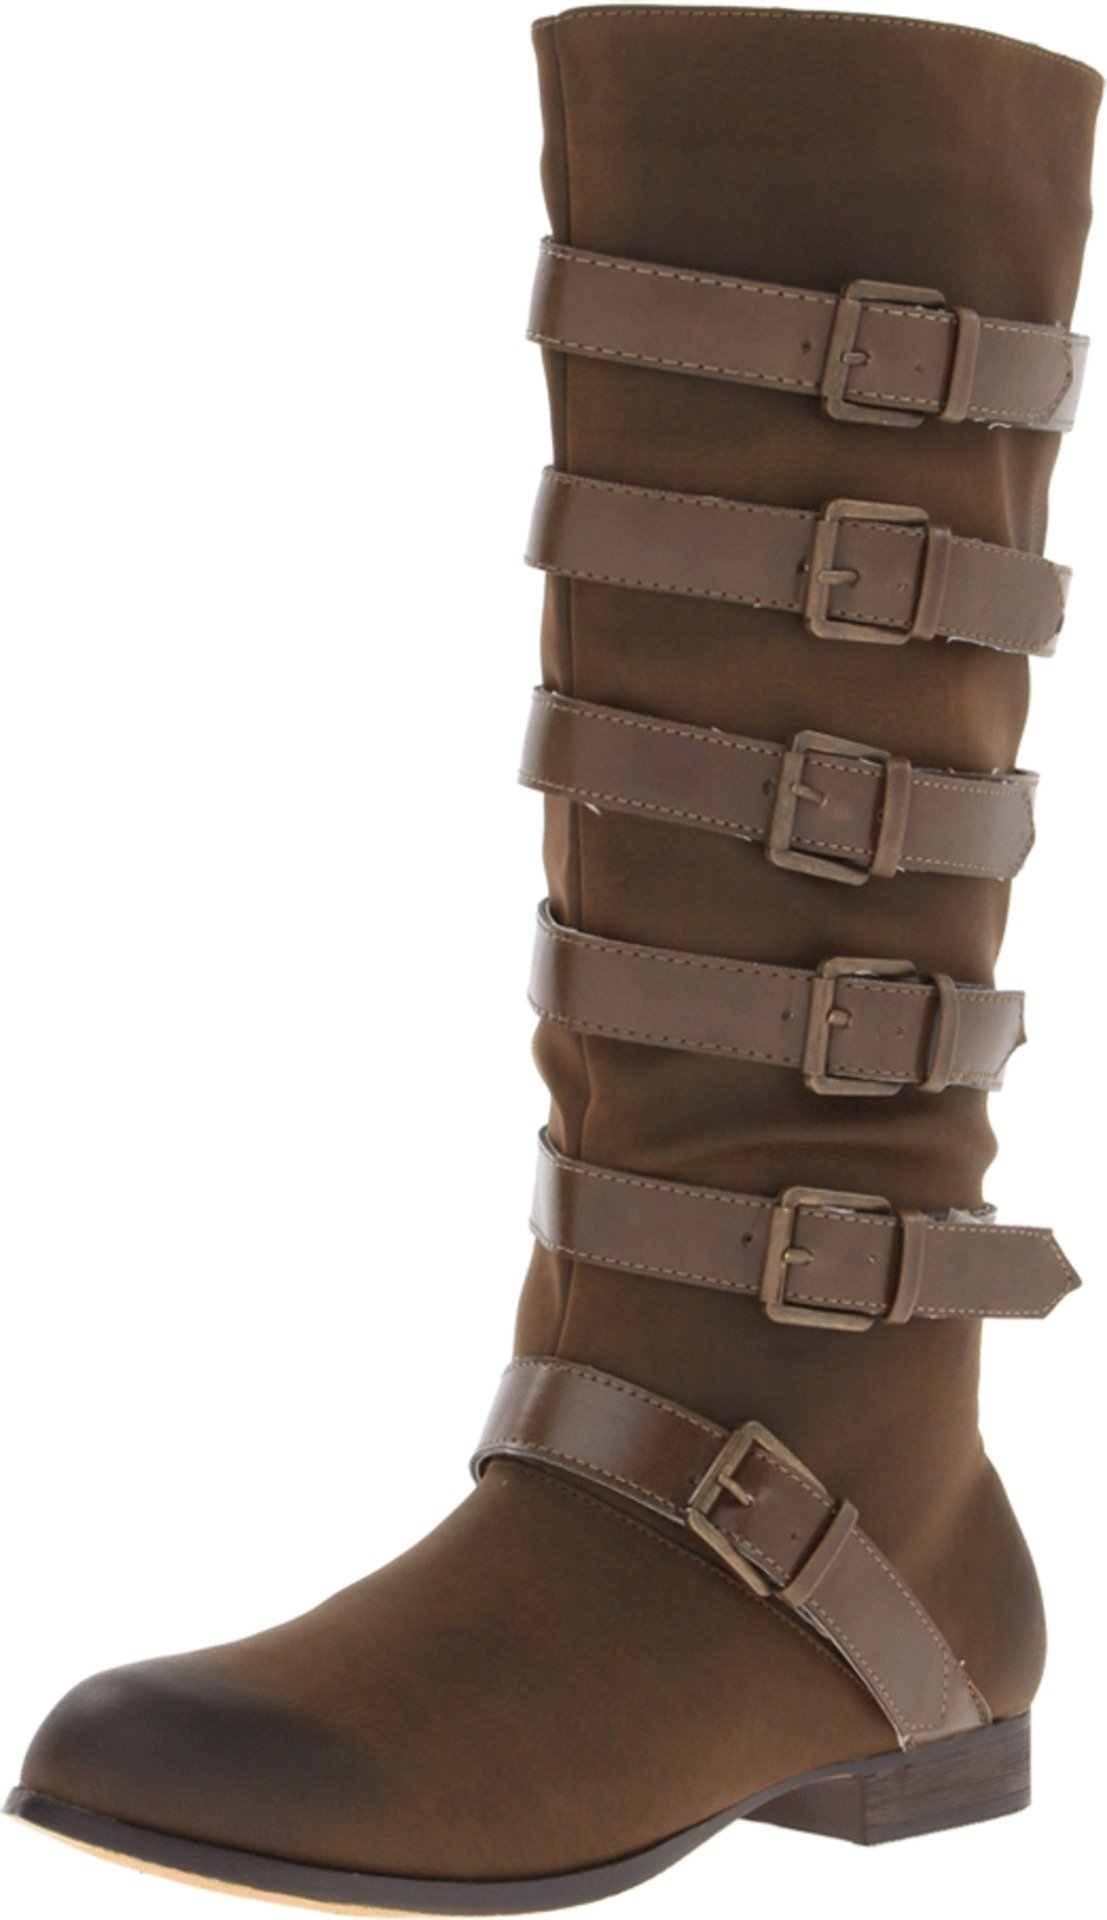 Penny Loves Kenny Women's Krista Riding Boot,Brown,6.5 M US